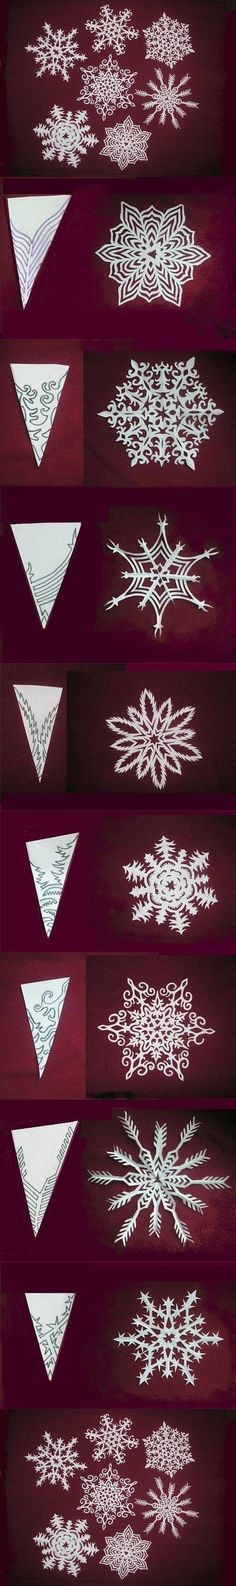 DIY Snowflakes Paper Pattern Tutorial DIY Projects / UsefulDIY.com on imgfave